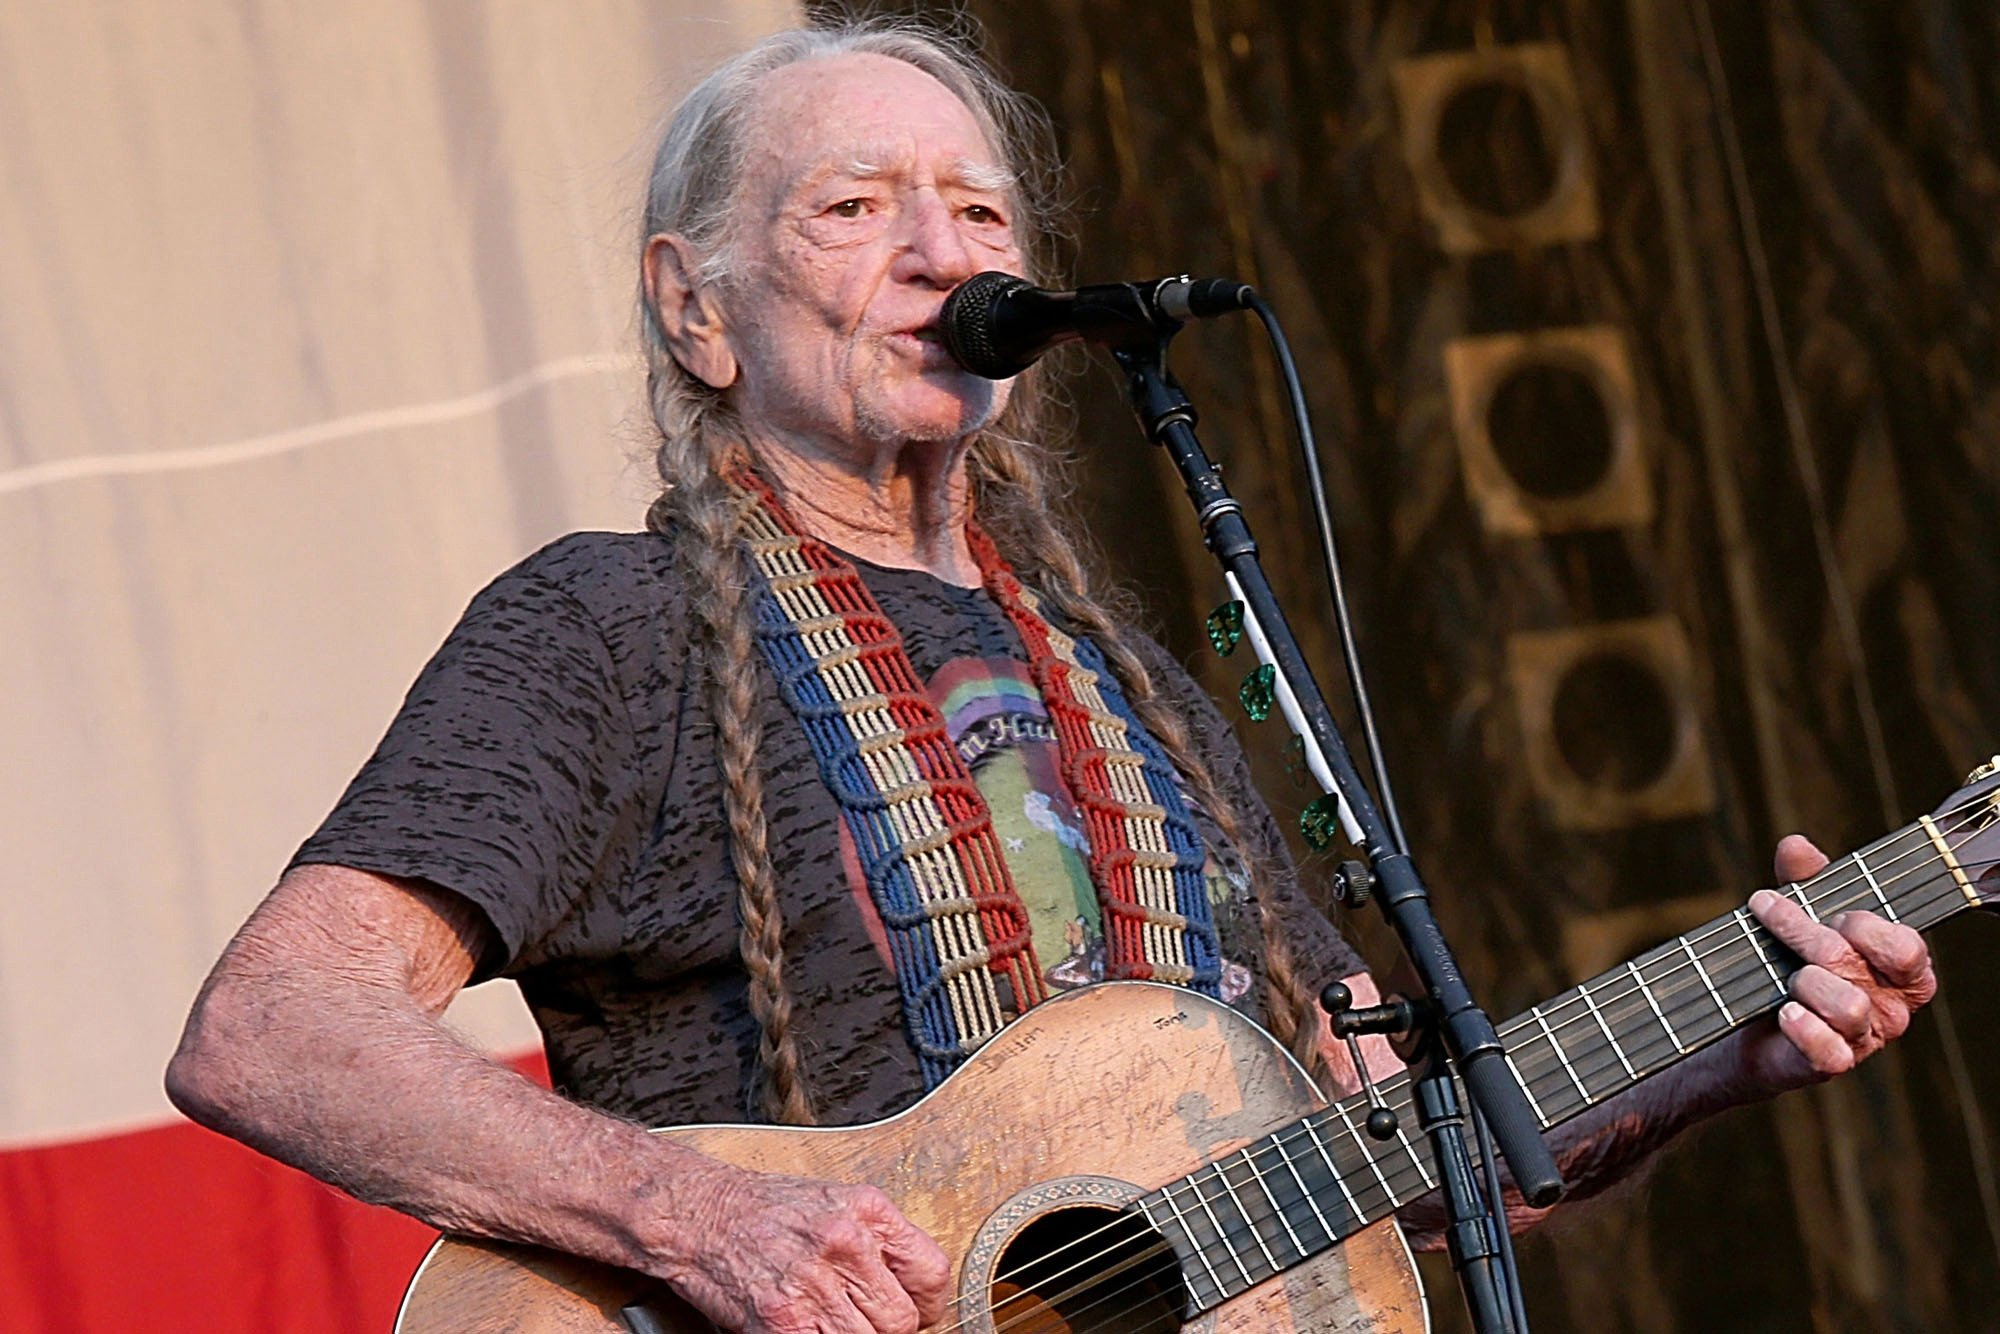 Willie Nelson announces new tour dates after illness